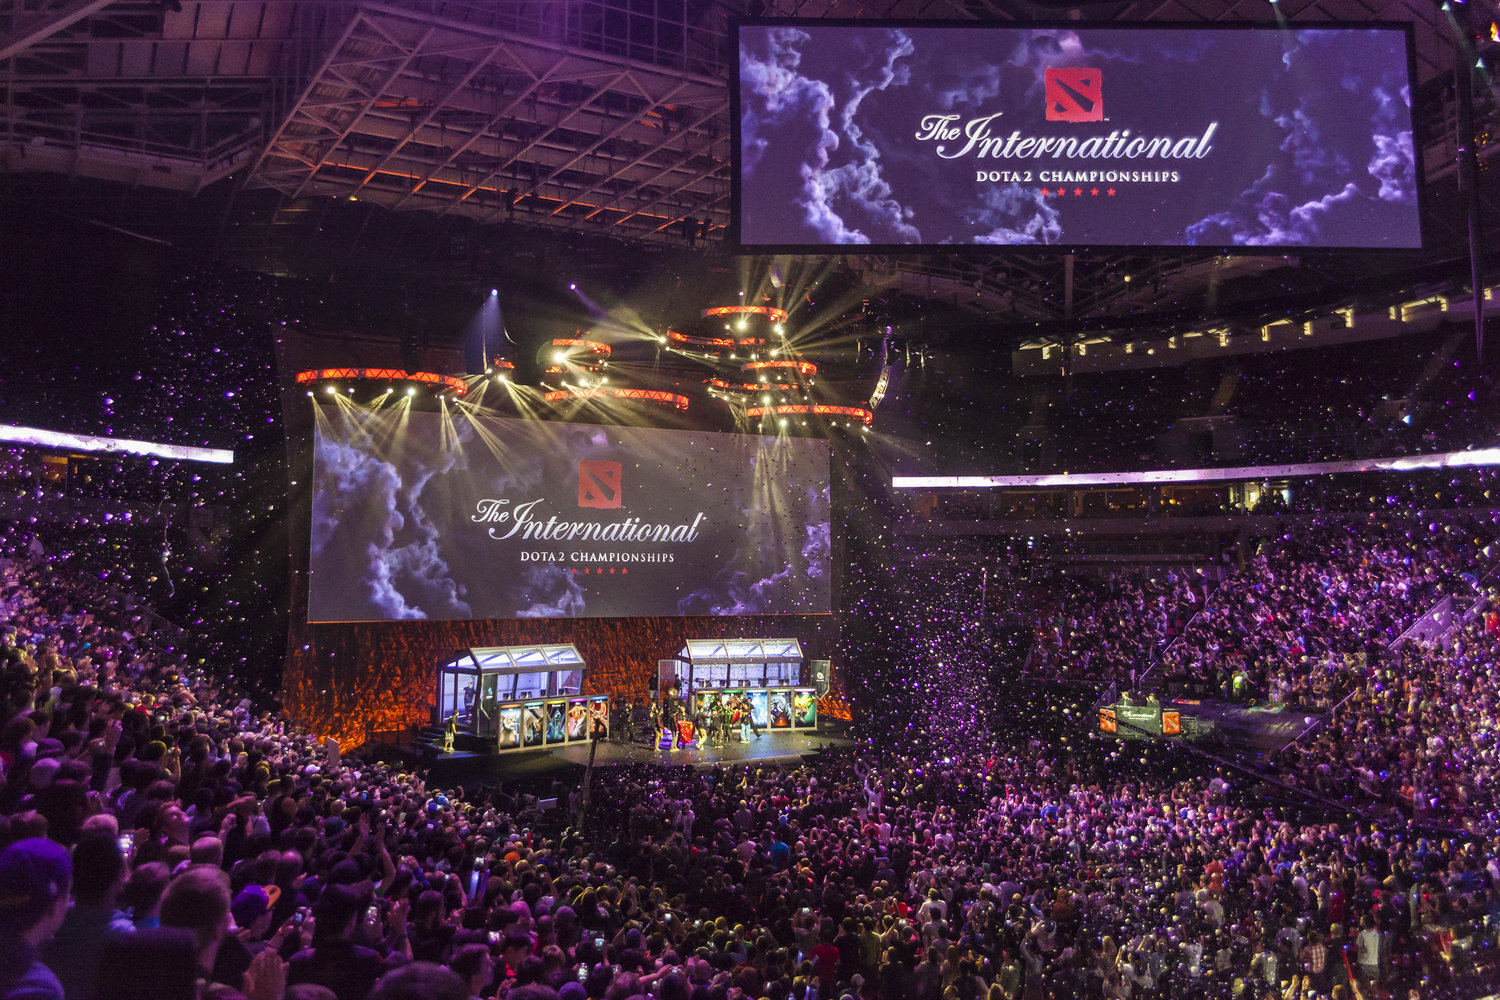 Image result for The international dota 2 2016